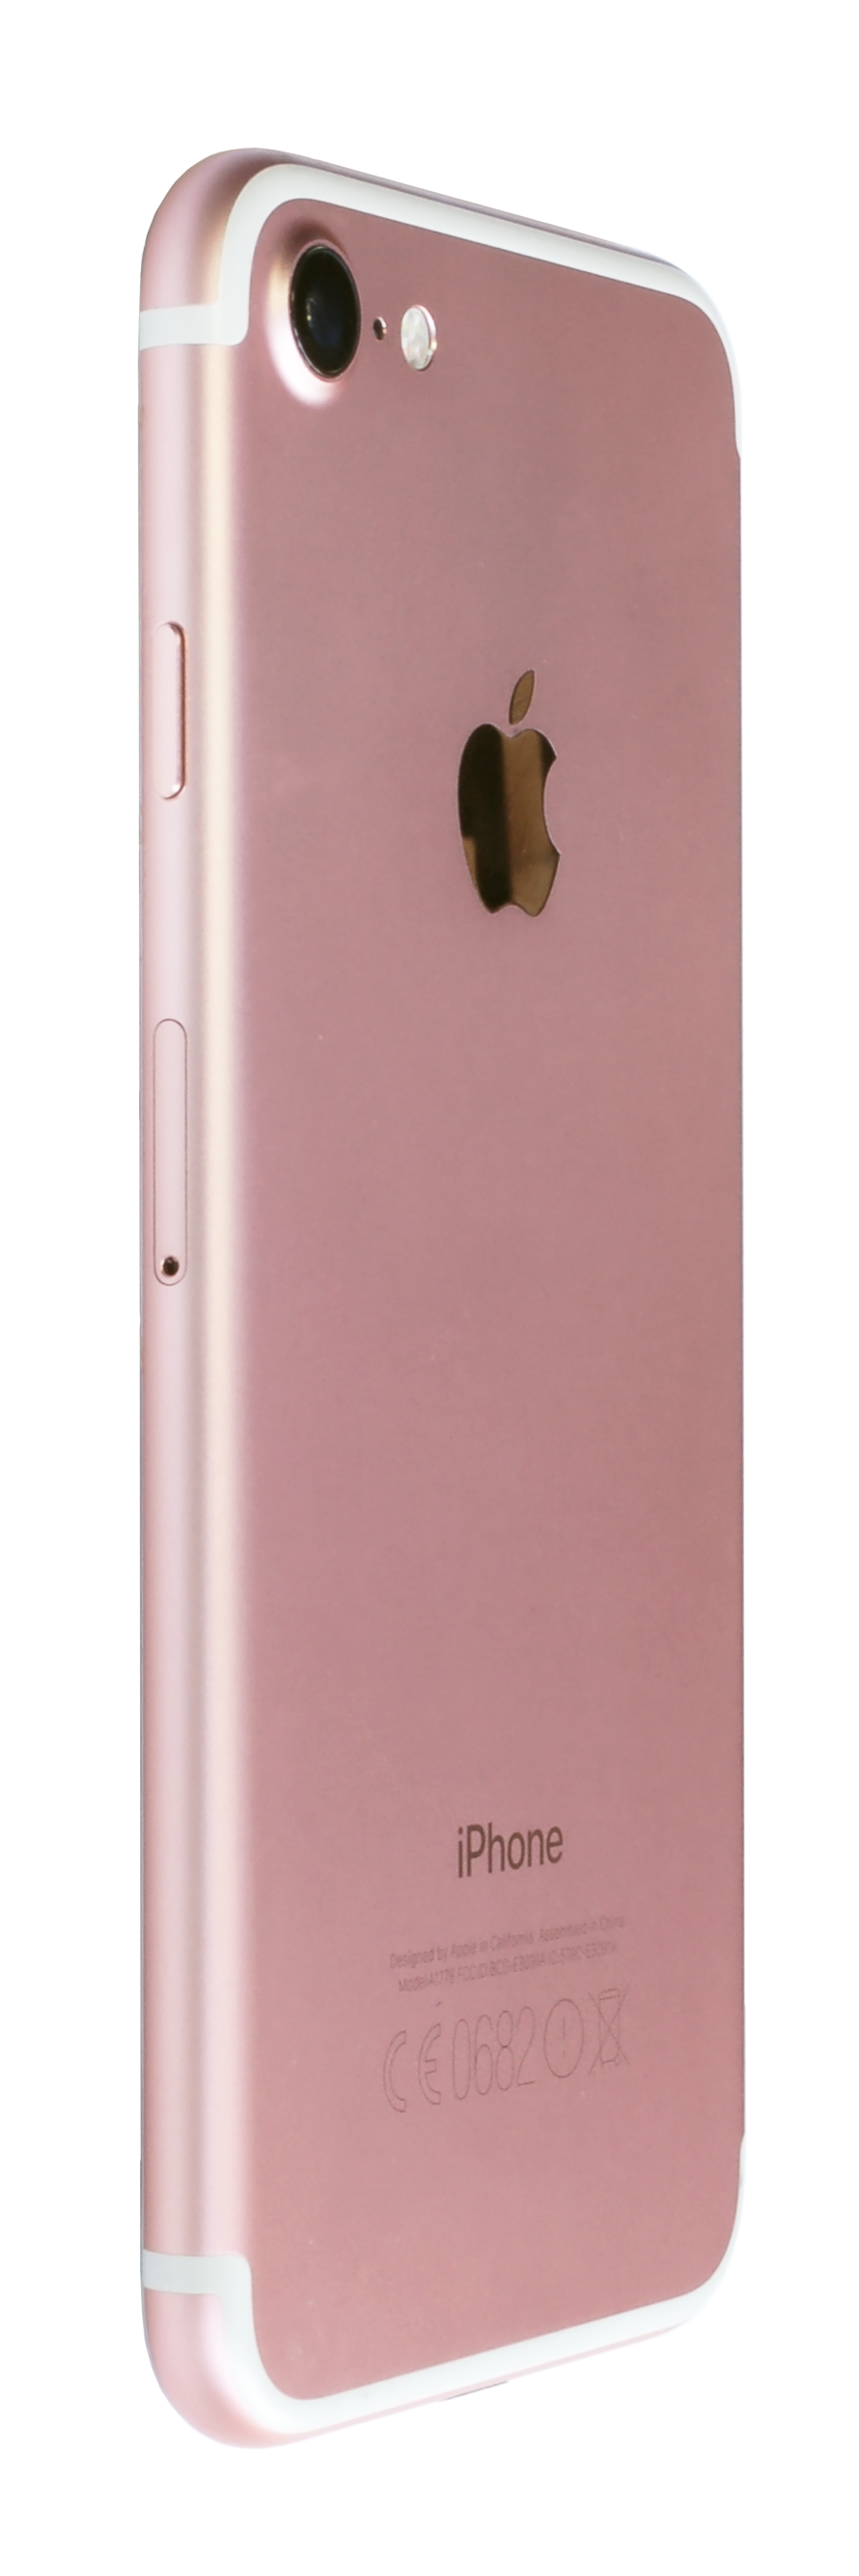 File:IPhone 7 - A1778 Rose Gold - Back Right - Transparent ...